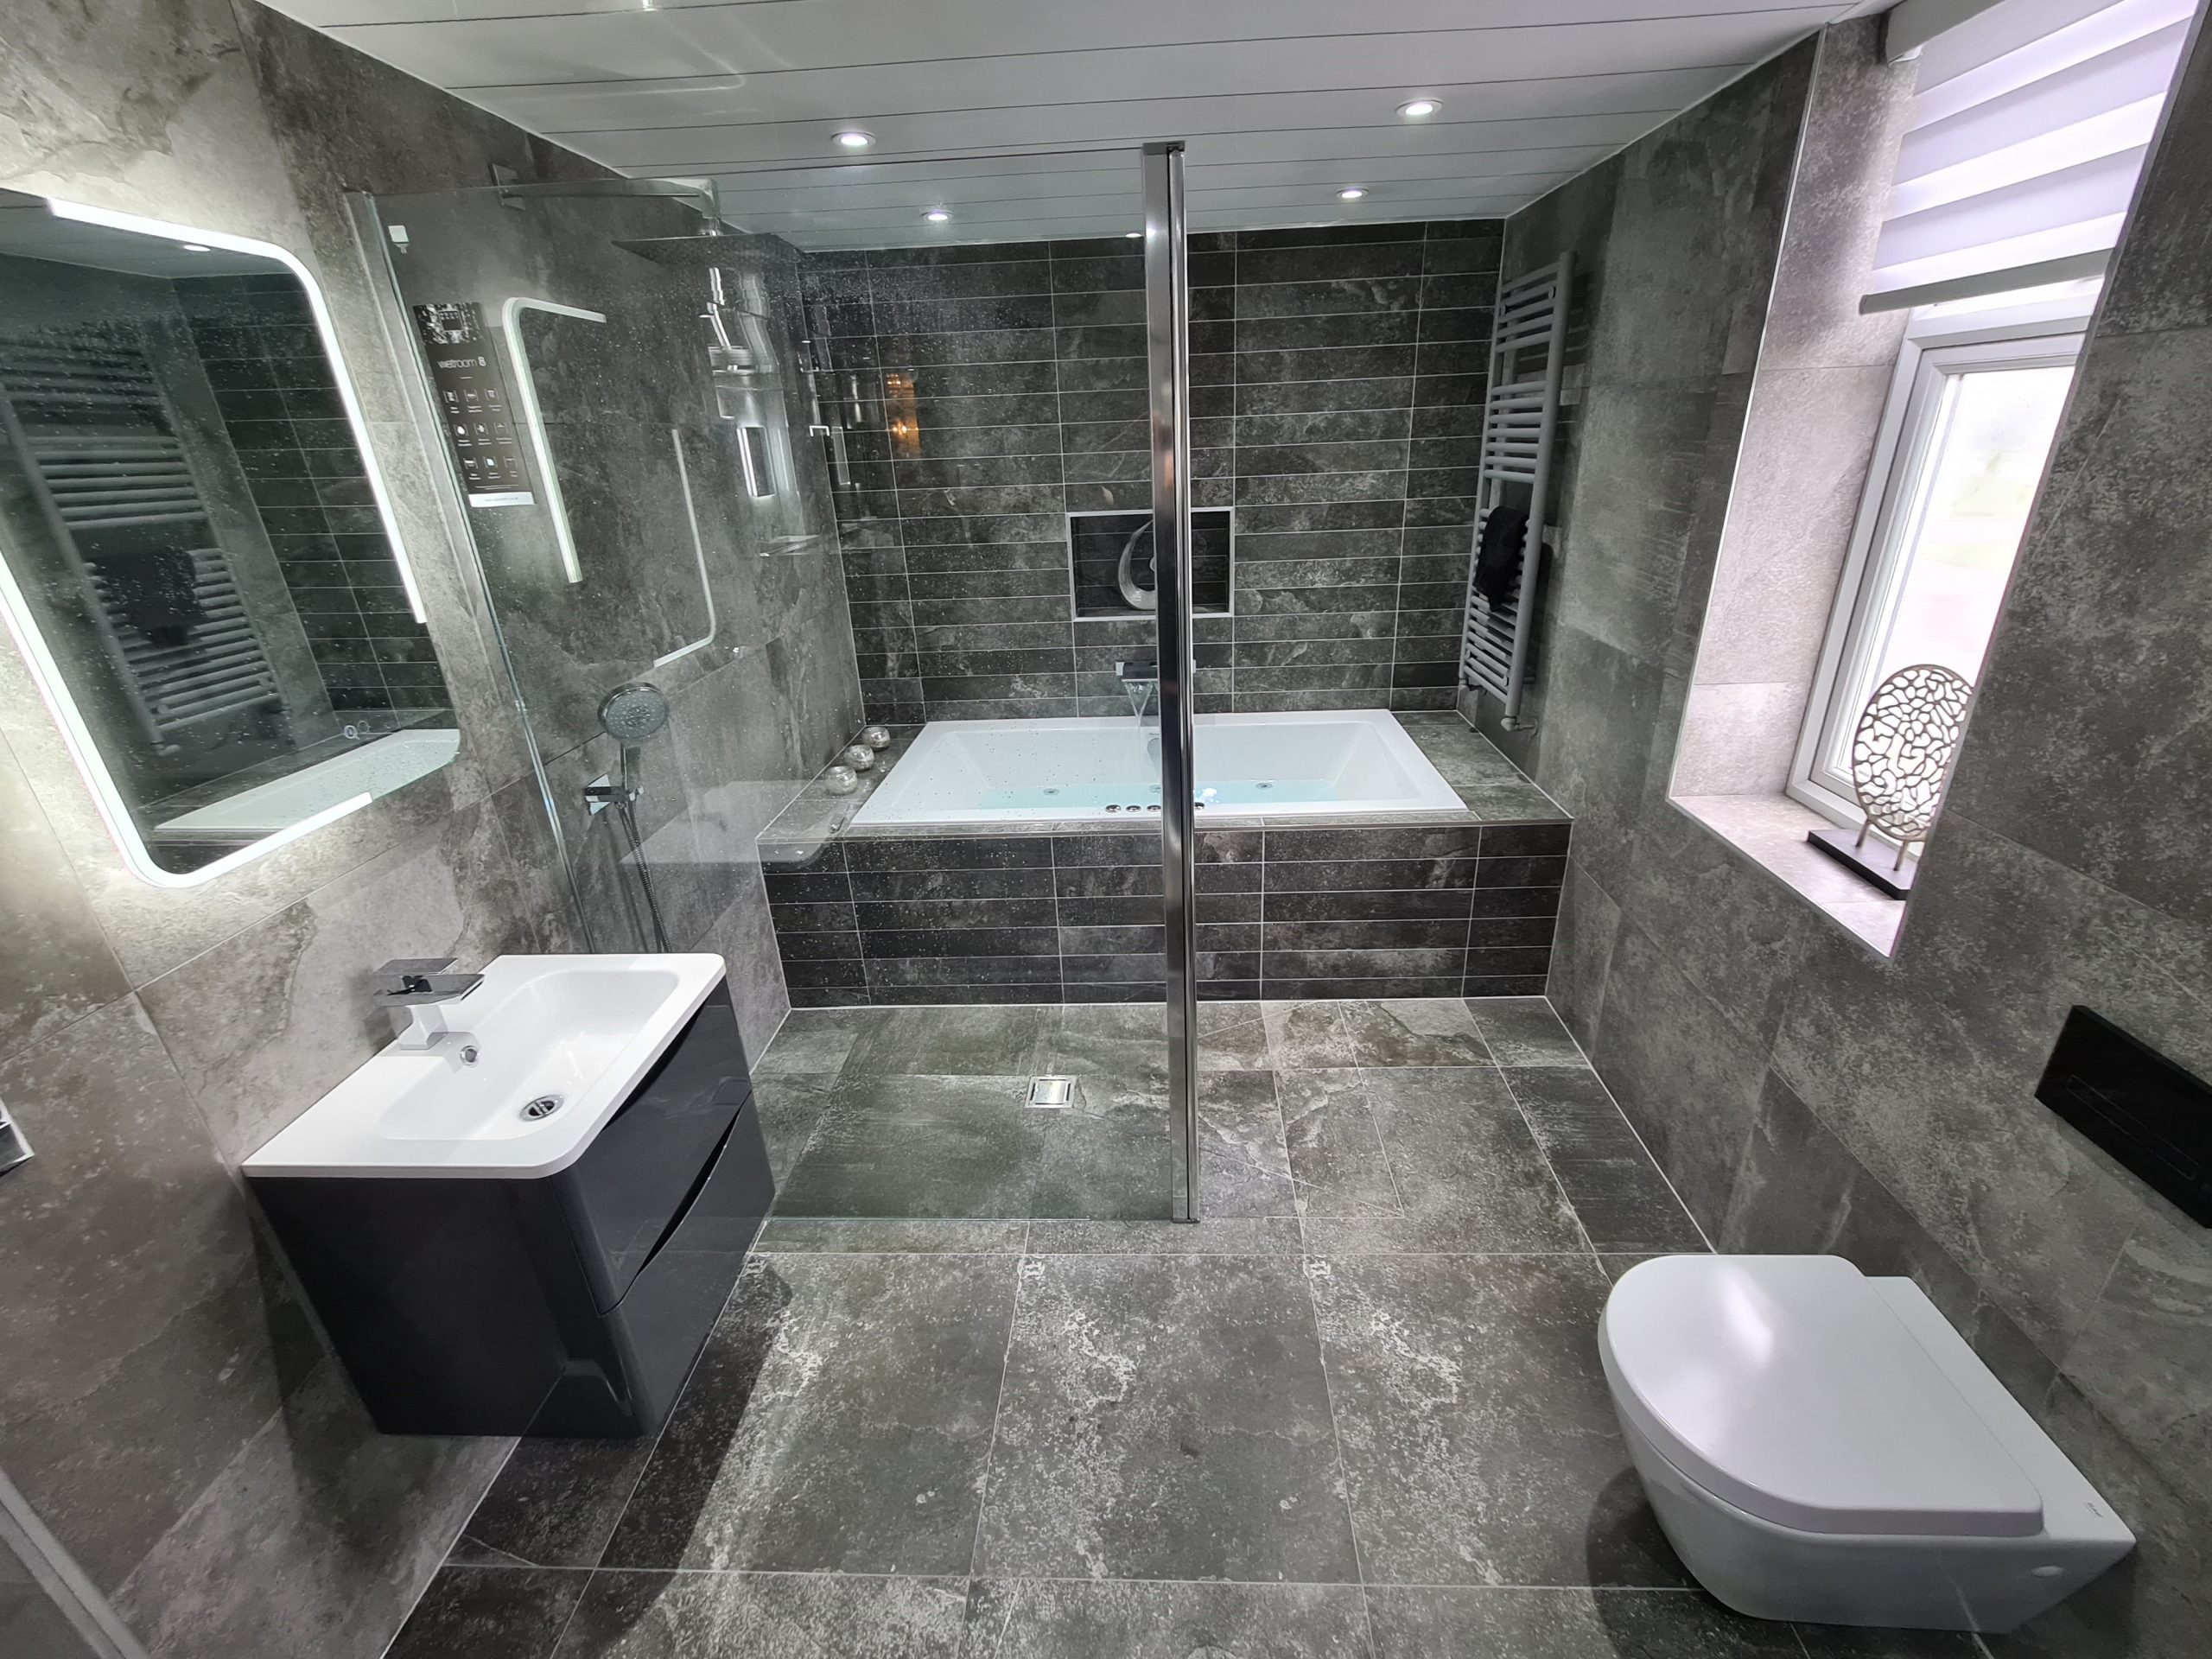 Bathroom specialists in North Shields